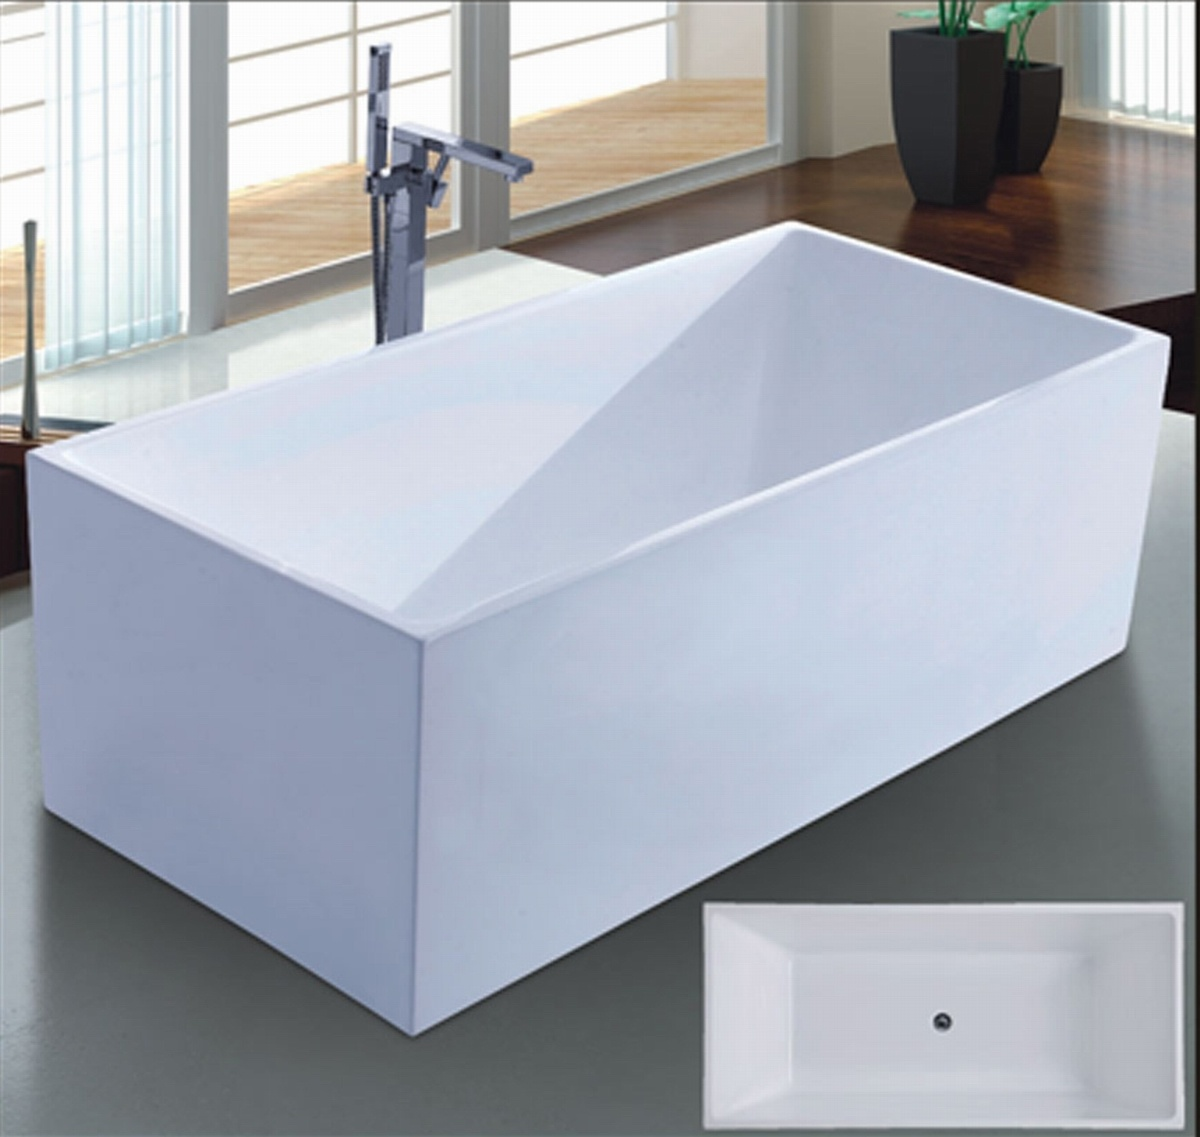 China 1700mm Right Angle Square Freestanding Bathtub SPA for Villa ...